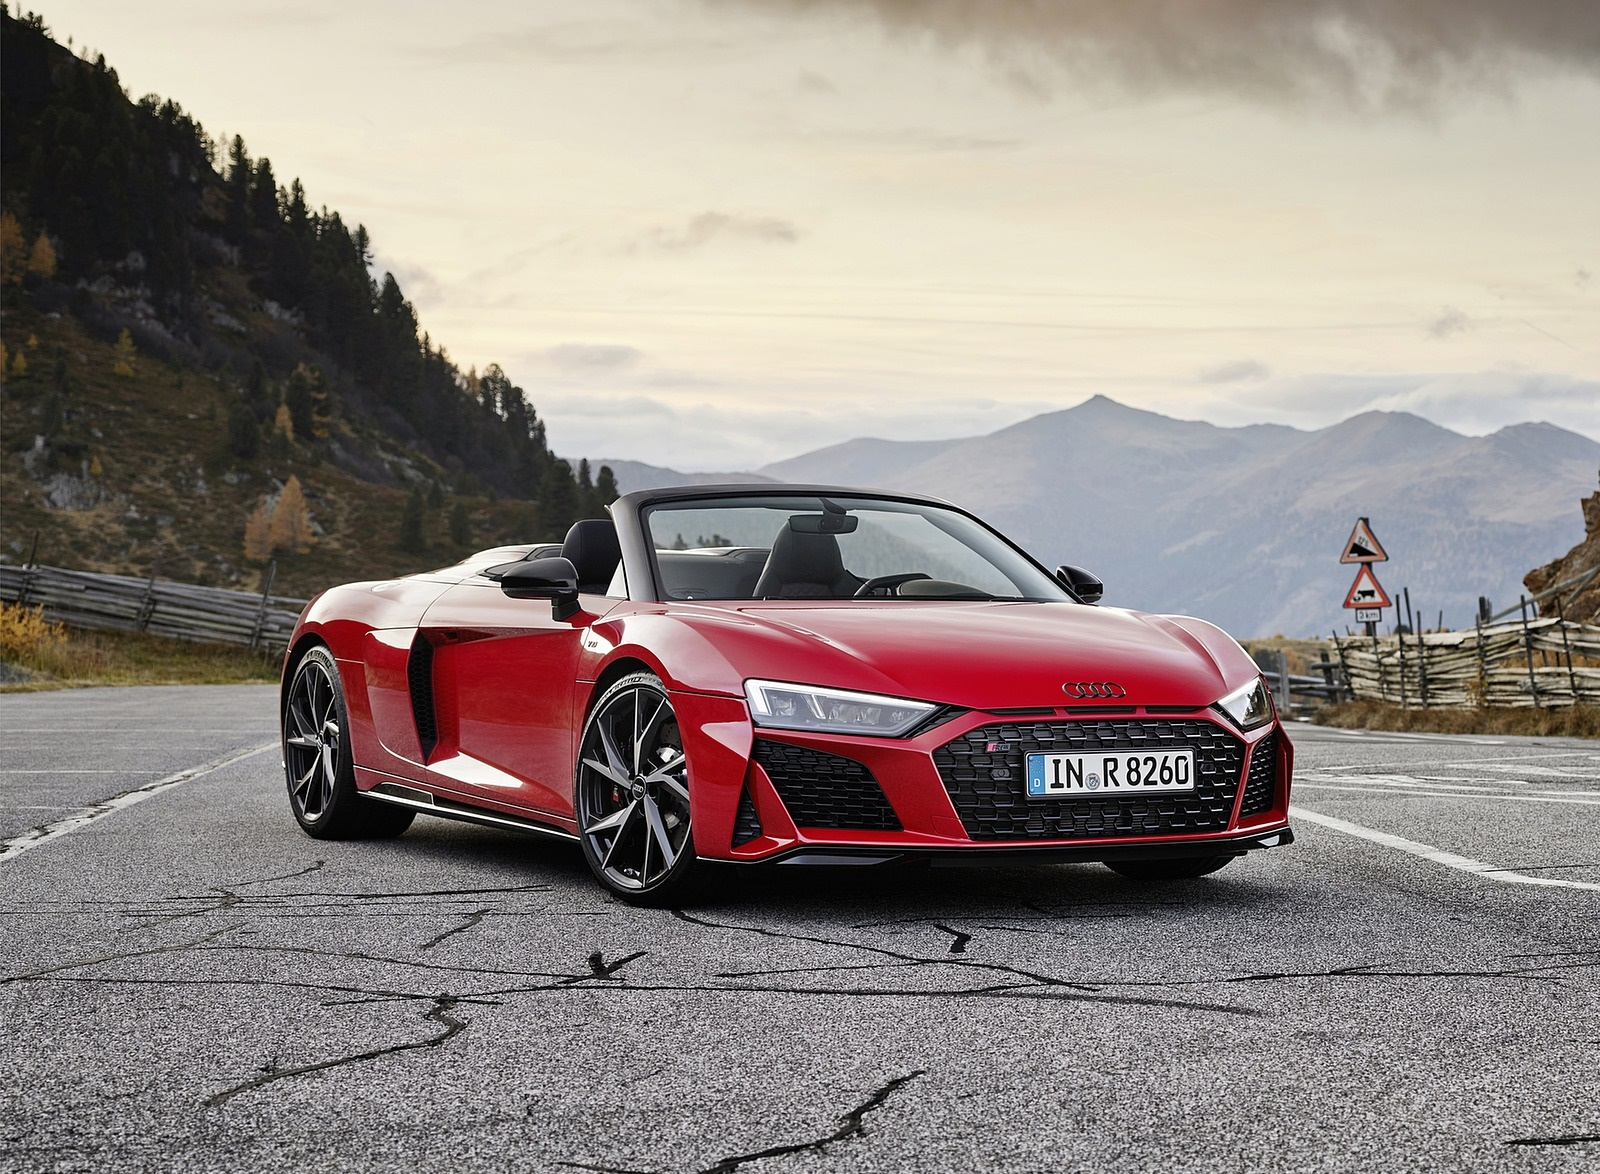 2020 Audi R8 V10 RWD Spyder (Color: Tango Red) Front Three-Quarter Wallpapers (10)